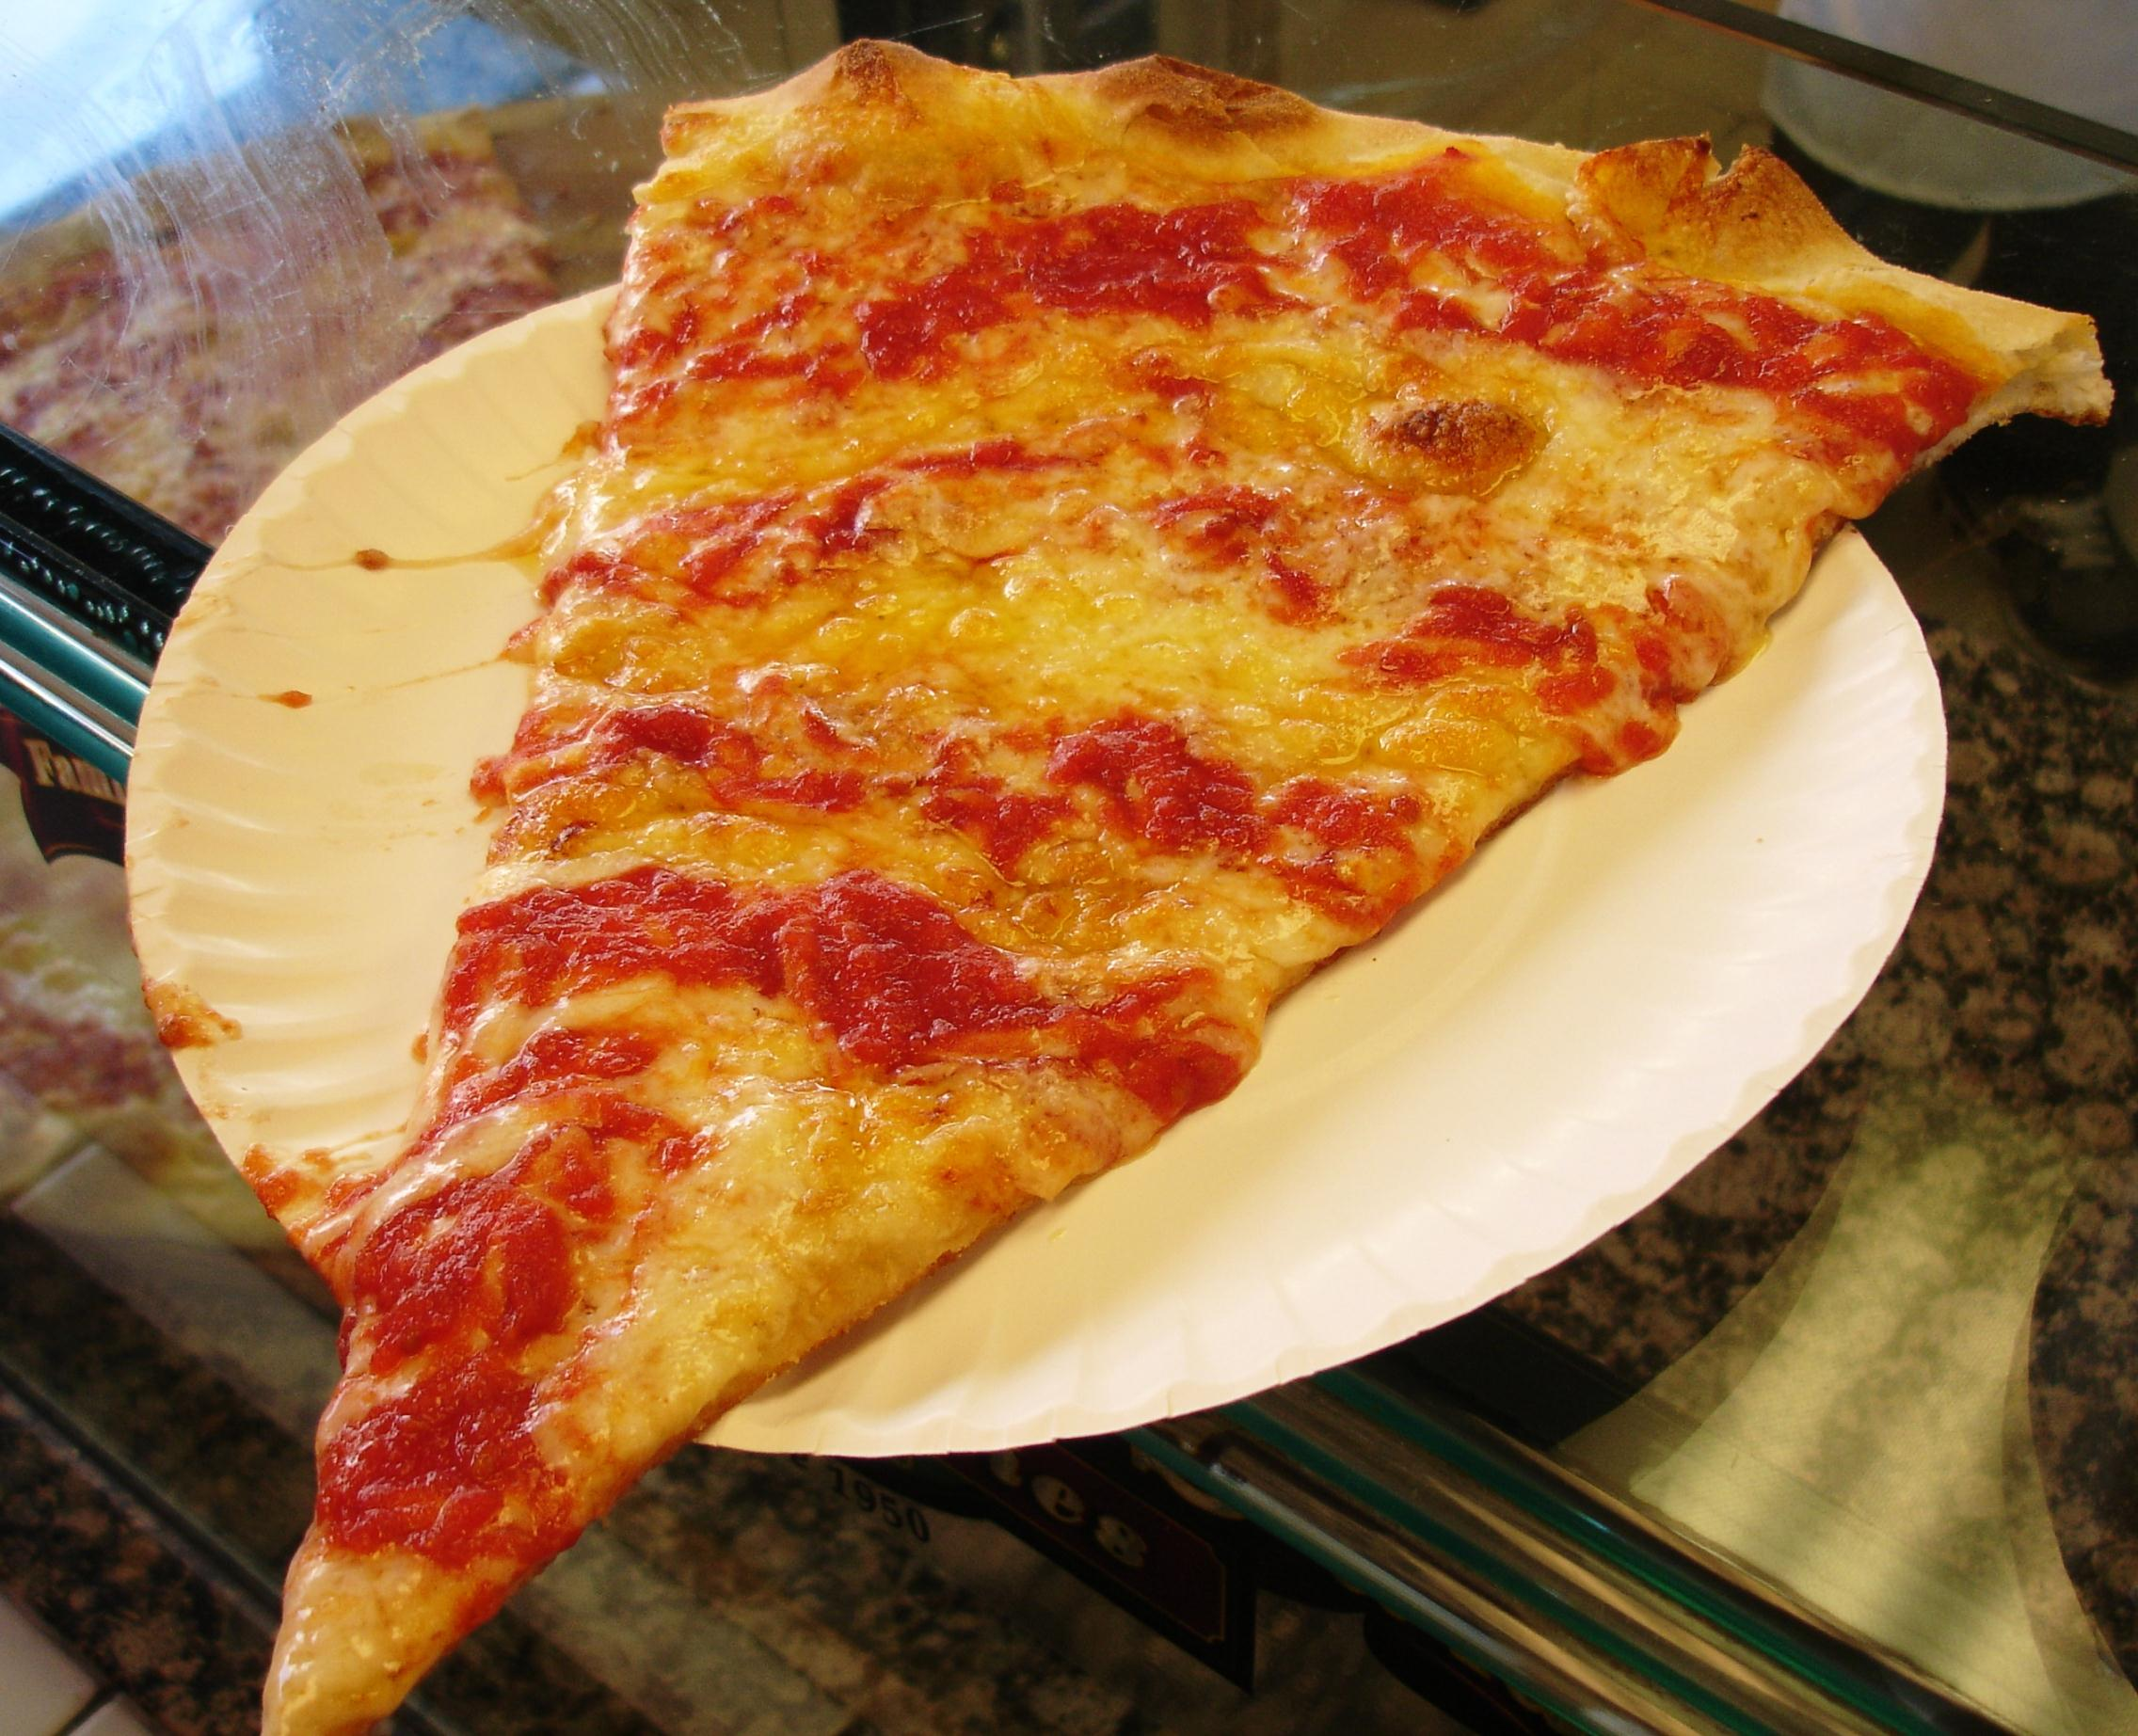 Maruca's giant slices are best enjoyed without extraneous toppings.